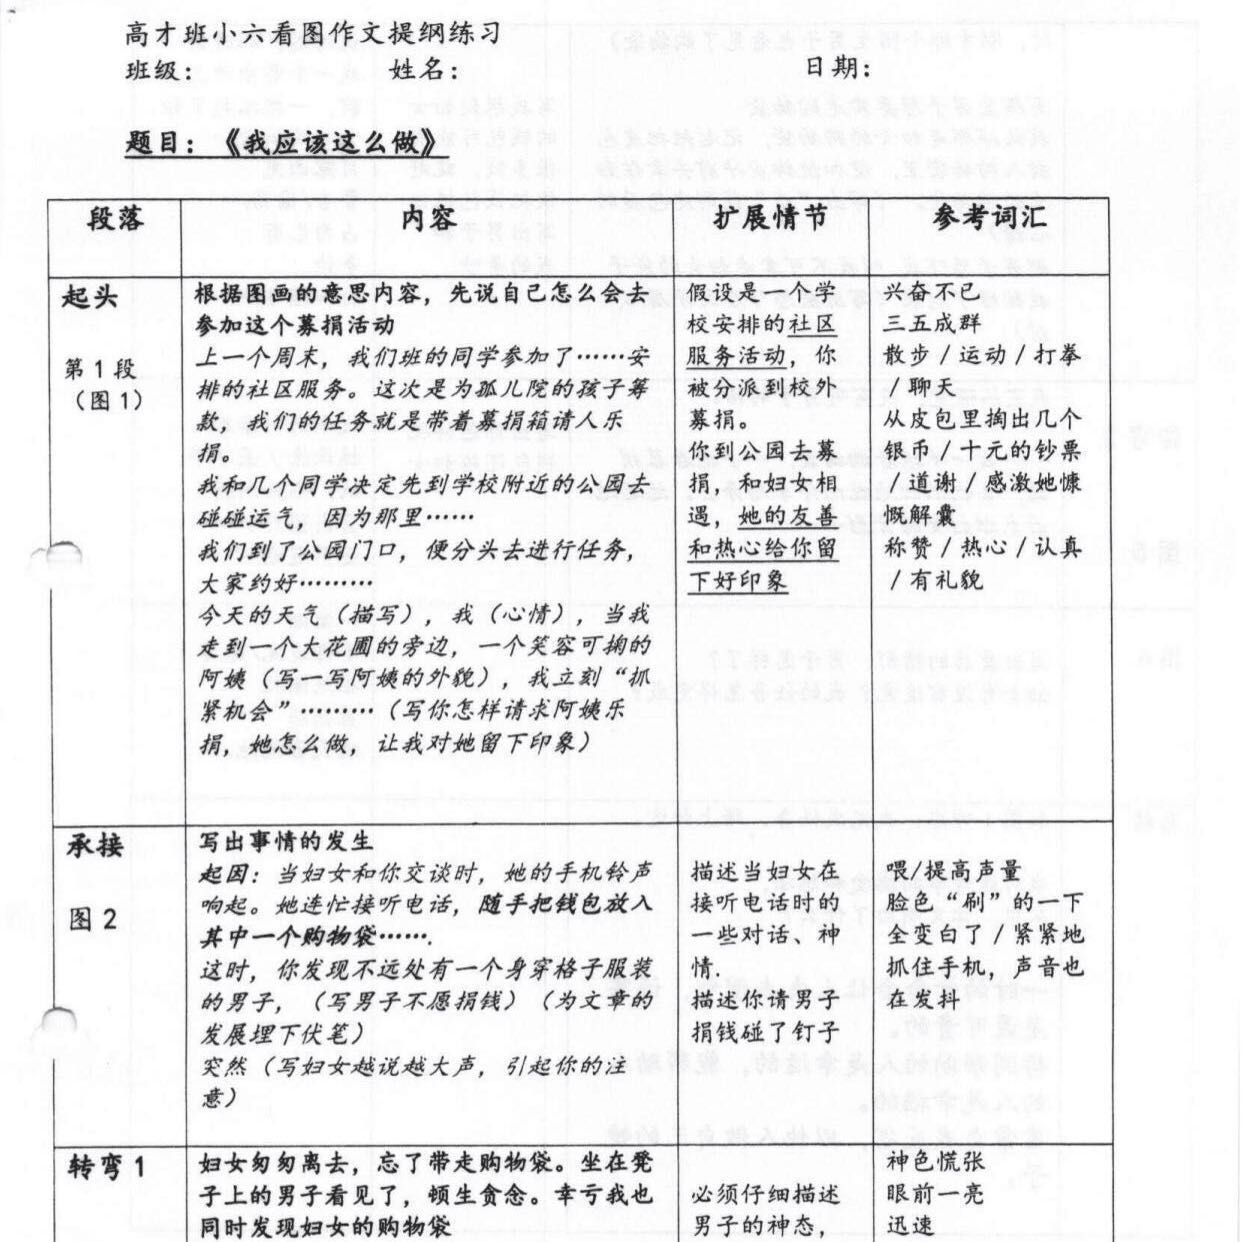 chinese model essays Chinese language essay contests  problem solution model essay layouts synonym for essay very important issue english writing essay examples syllabus on compassion essay respecting elders the classification essay lotus my occupation essay karachi essay to university best friend read ielts essay topics list pdf.